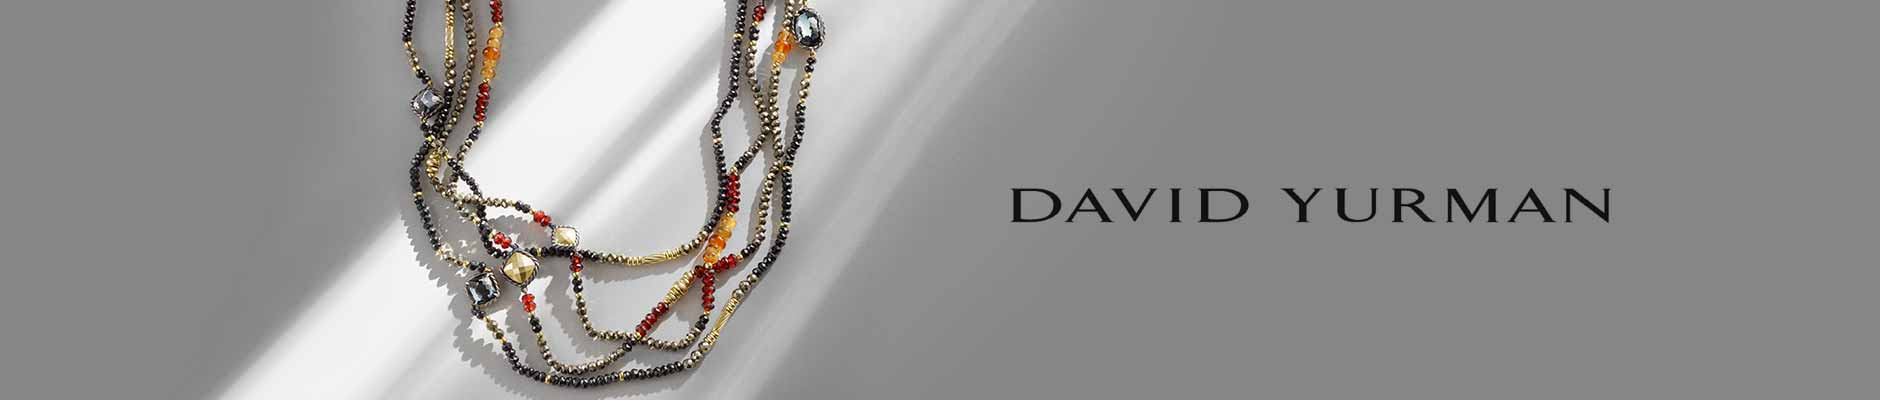 David Yurman Necklaces and Chains